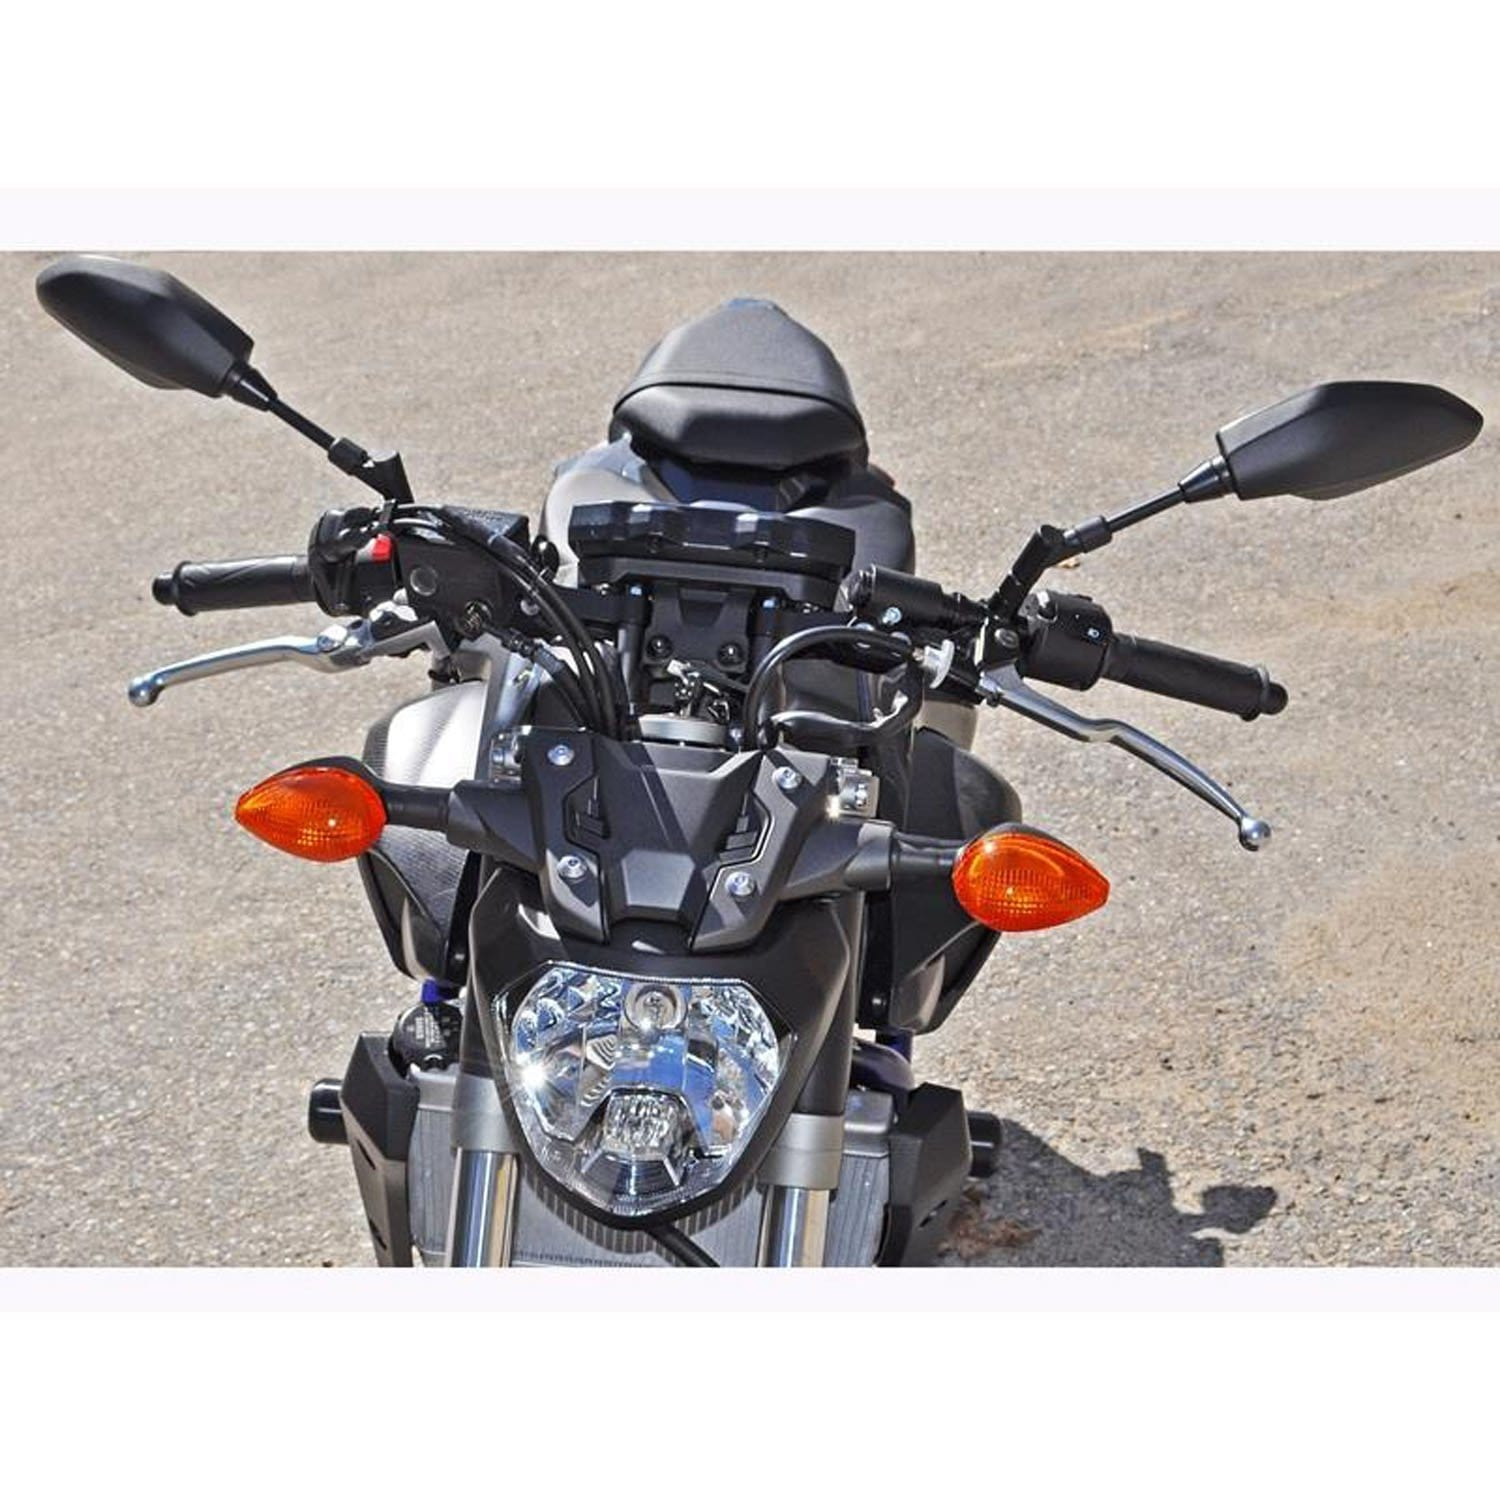 Clipon Adapter Plate w/ Std. Black Bars Yamaha FZ-07 2015-17, MT-07 2018-20